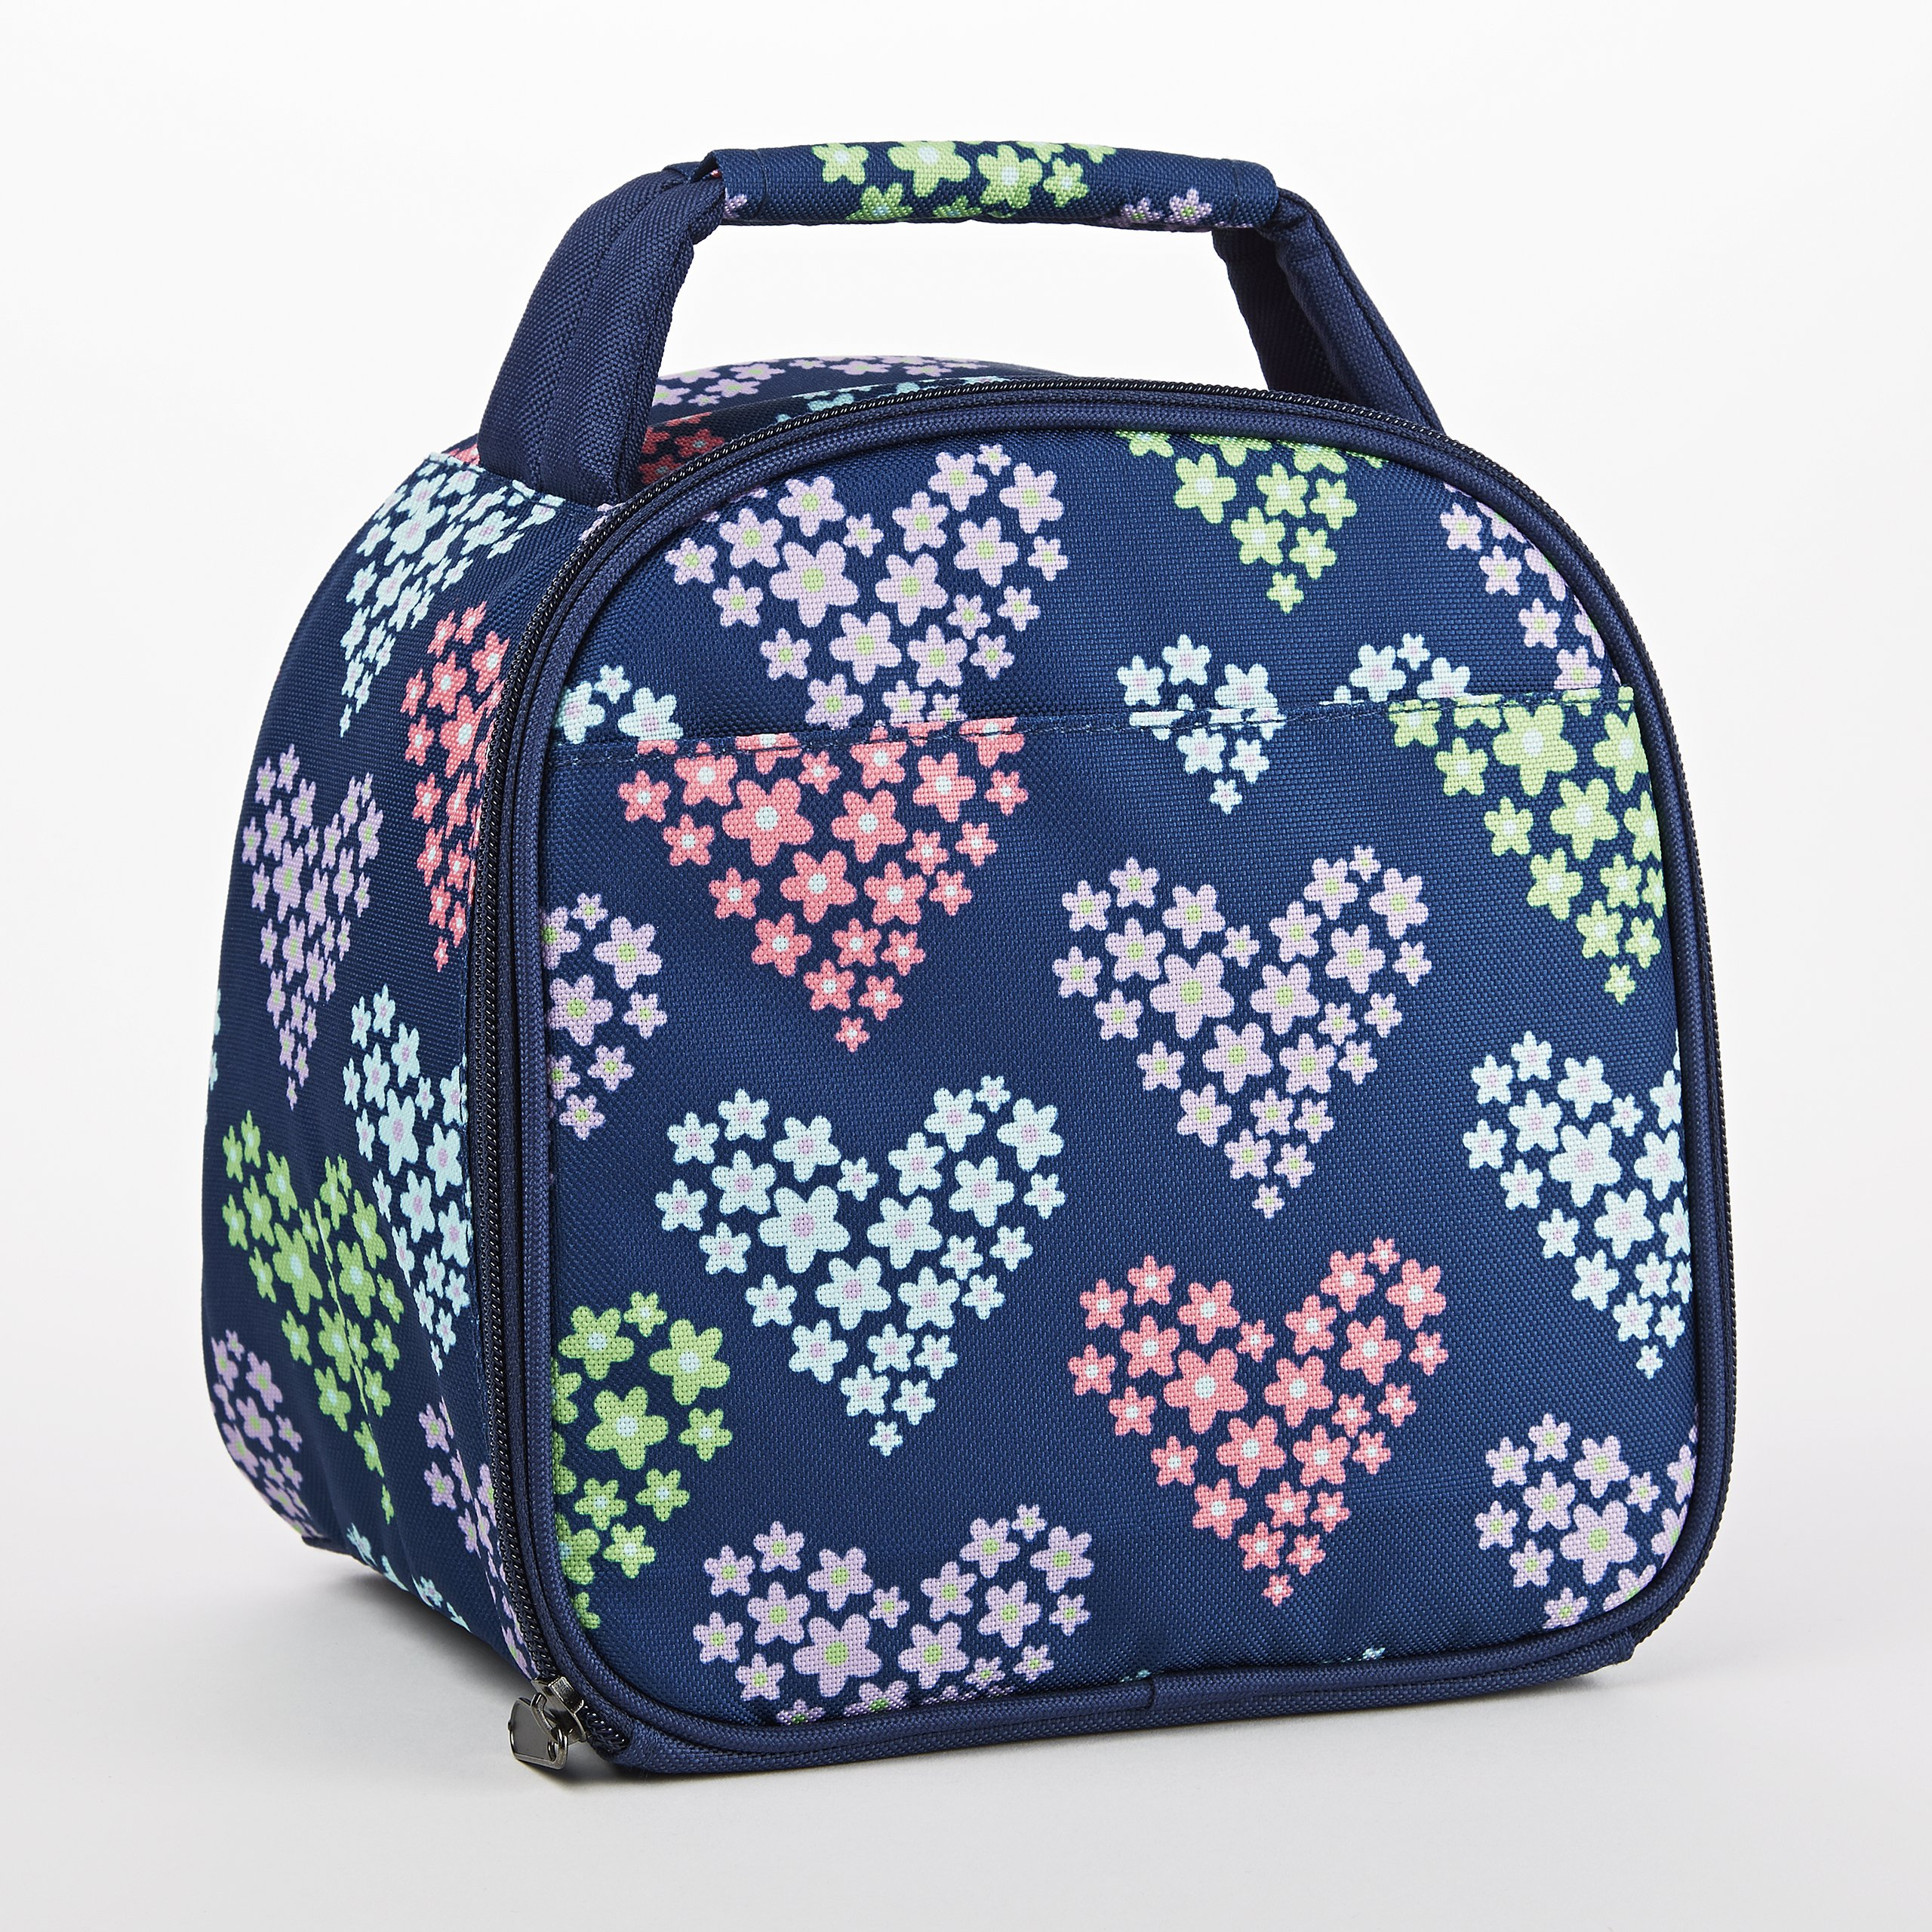 Fit & Fresh Kids' Gabby Insulated Lunch Bag with Exterior Pocket and Full Zip Closure, Versatile School Lunch Box for Girls, Heart Flowers